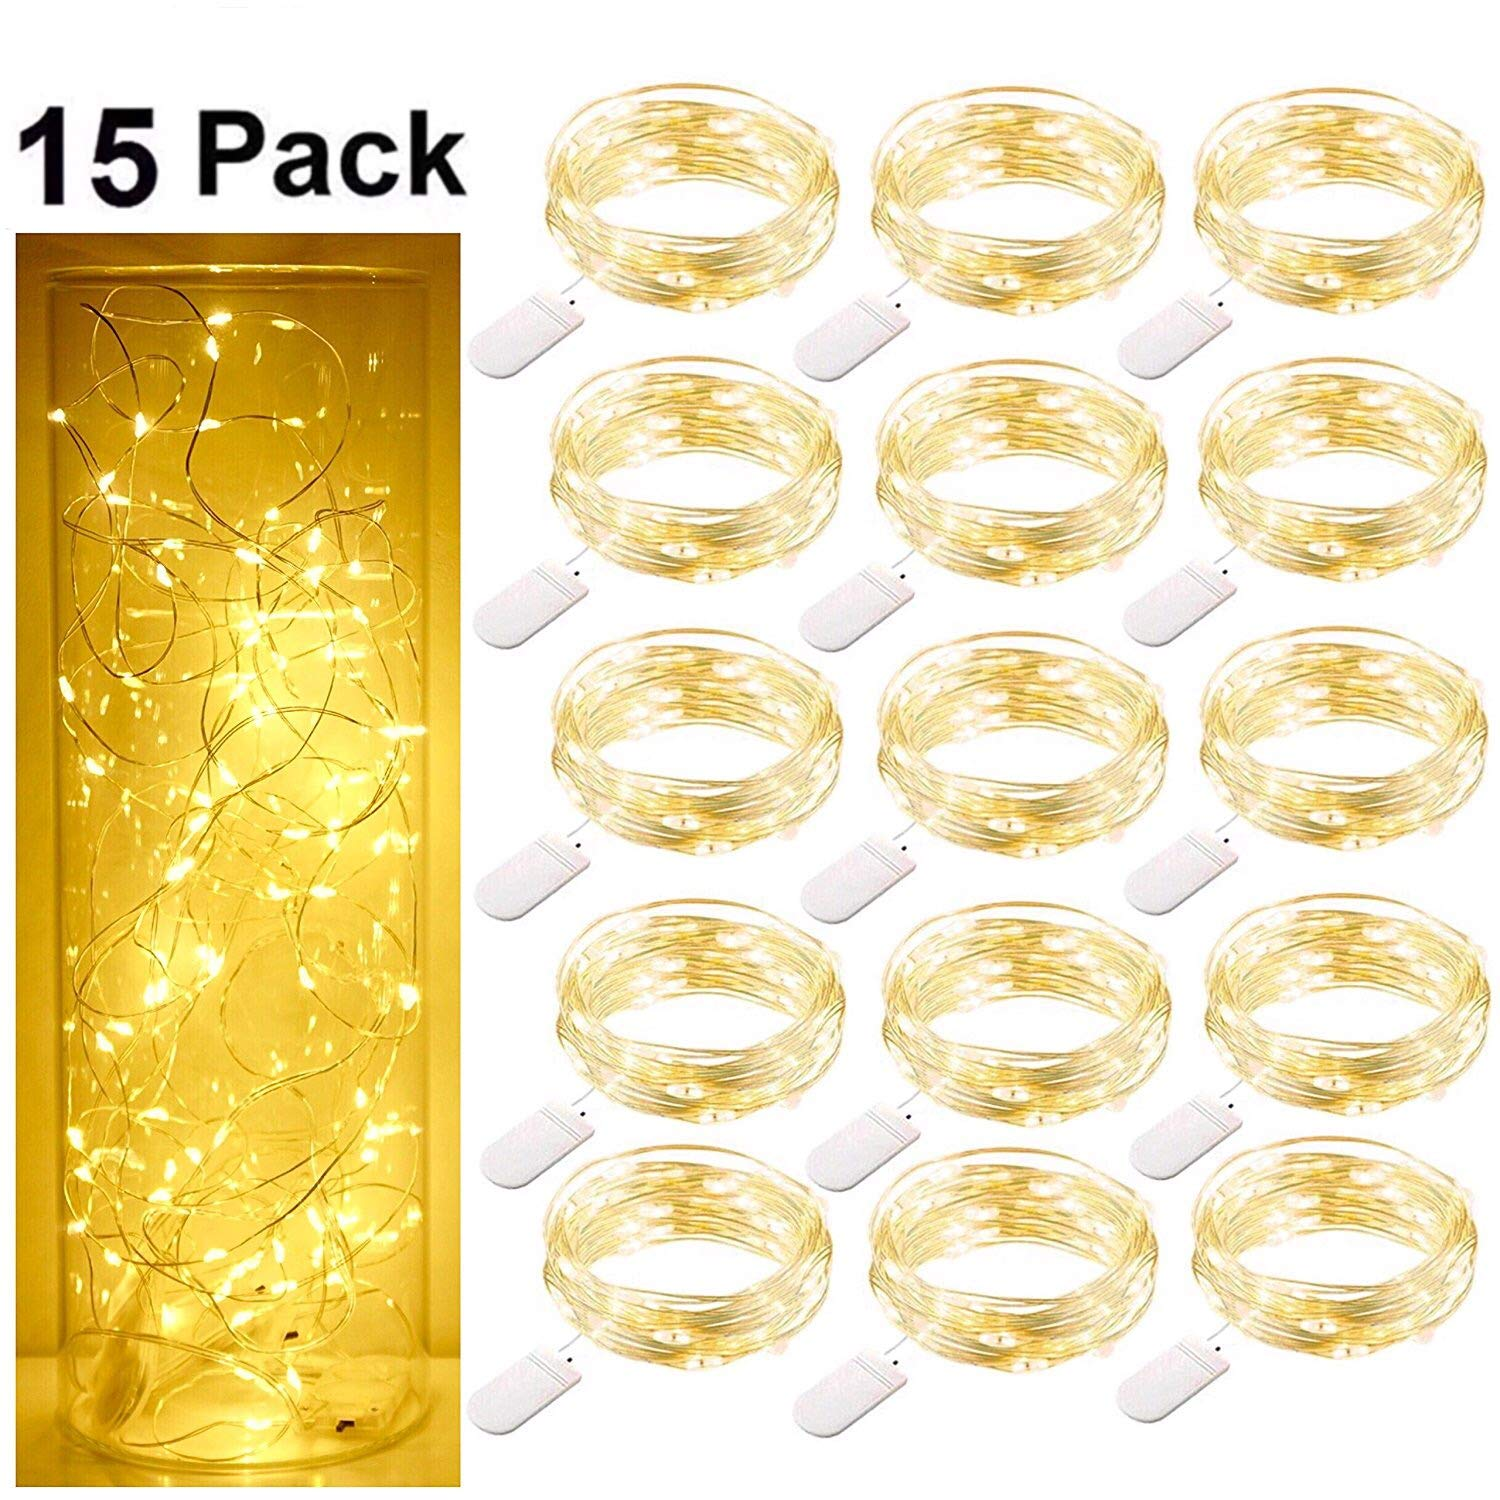 Starry String Fairy Lights, SmilingStore Firefly Lights with 20 Micro LED on 7.2feet/2m Silver Copper Wire Battery Powered for DIY Wedding Party Centerpiece Decorations Pack of 15 - Warm White